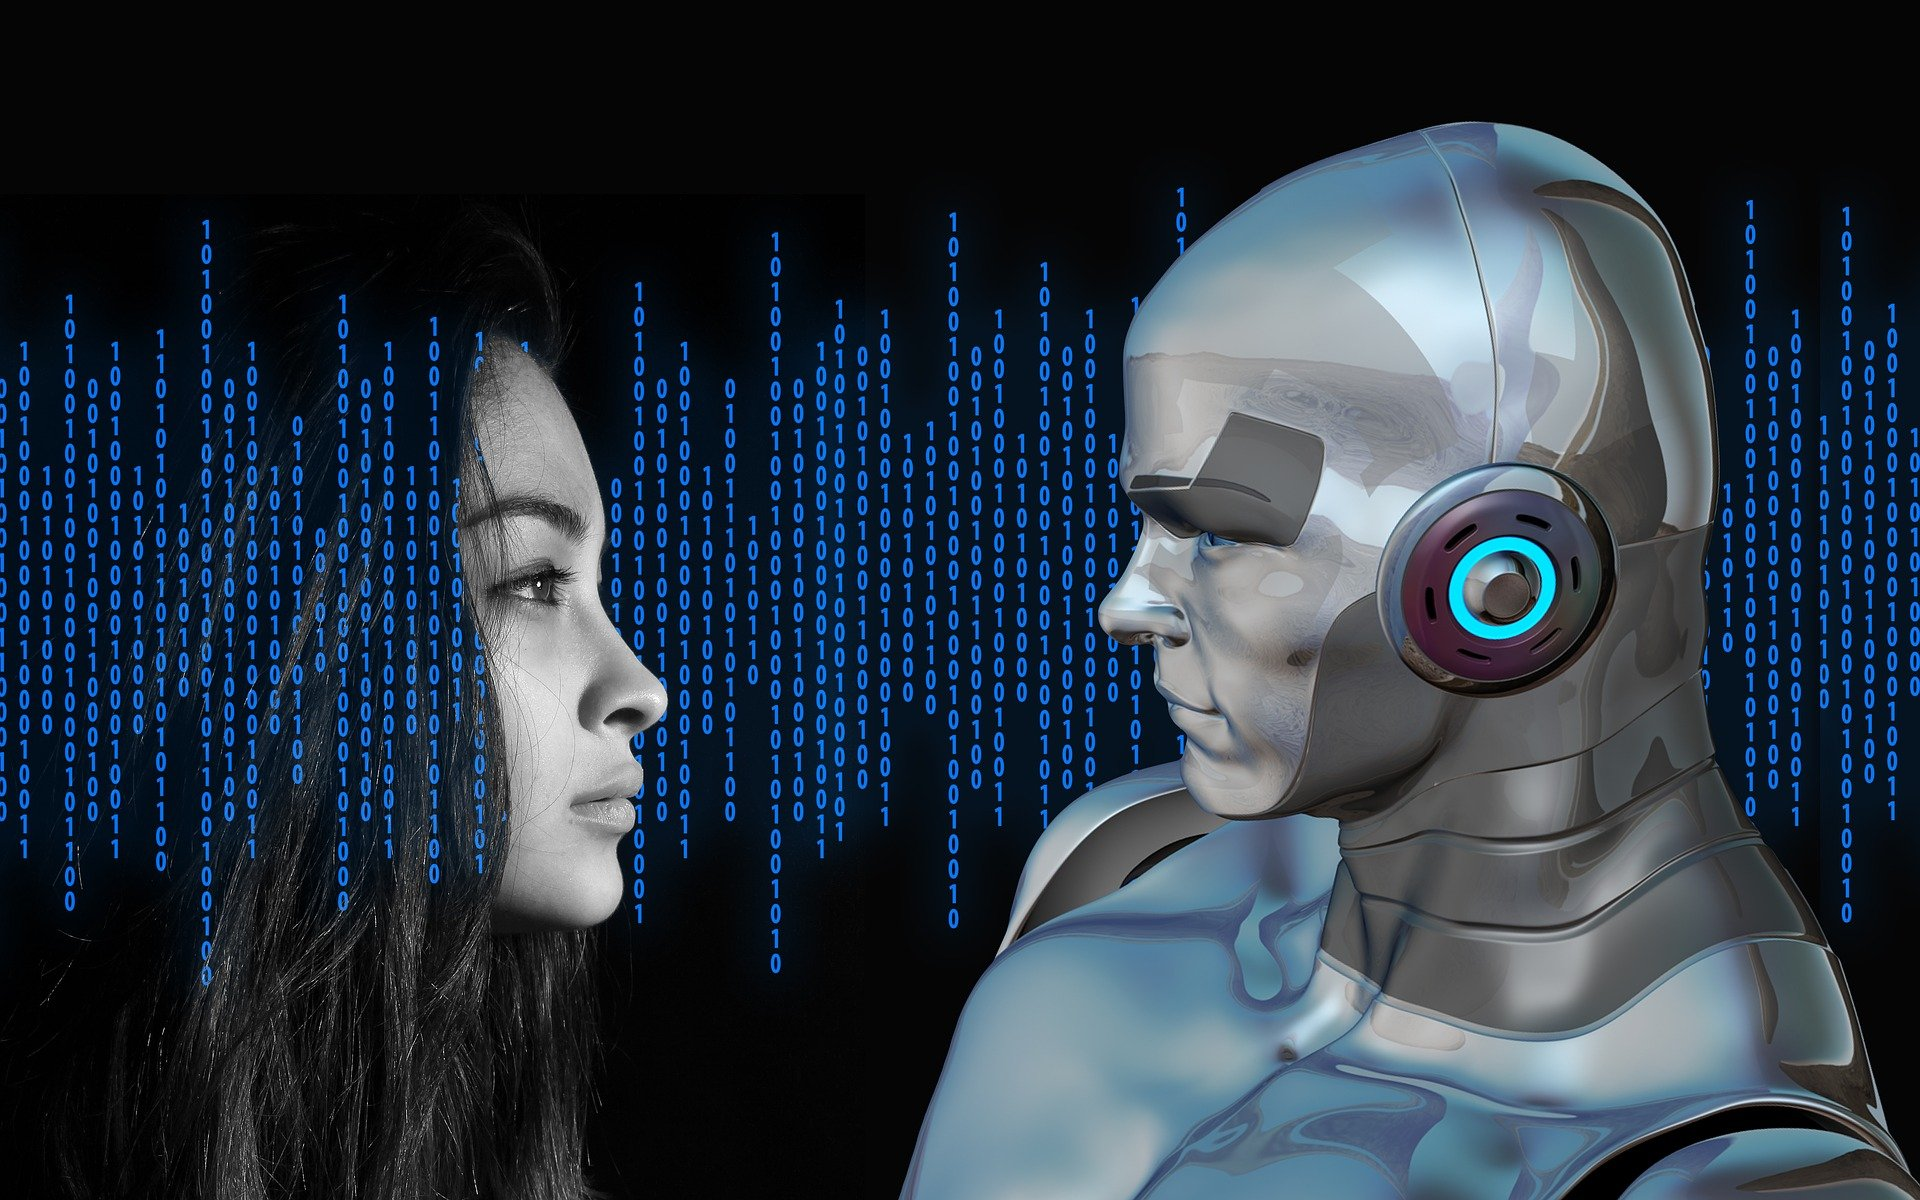 The Human Machine Connection Can Save The Customer Experience